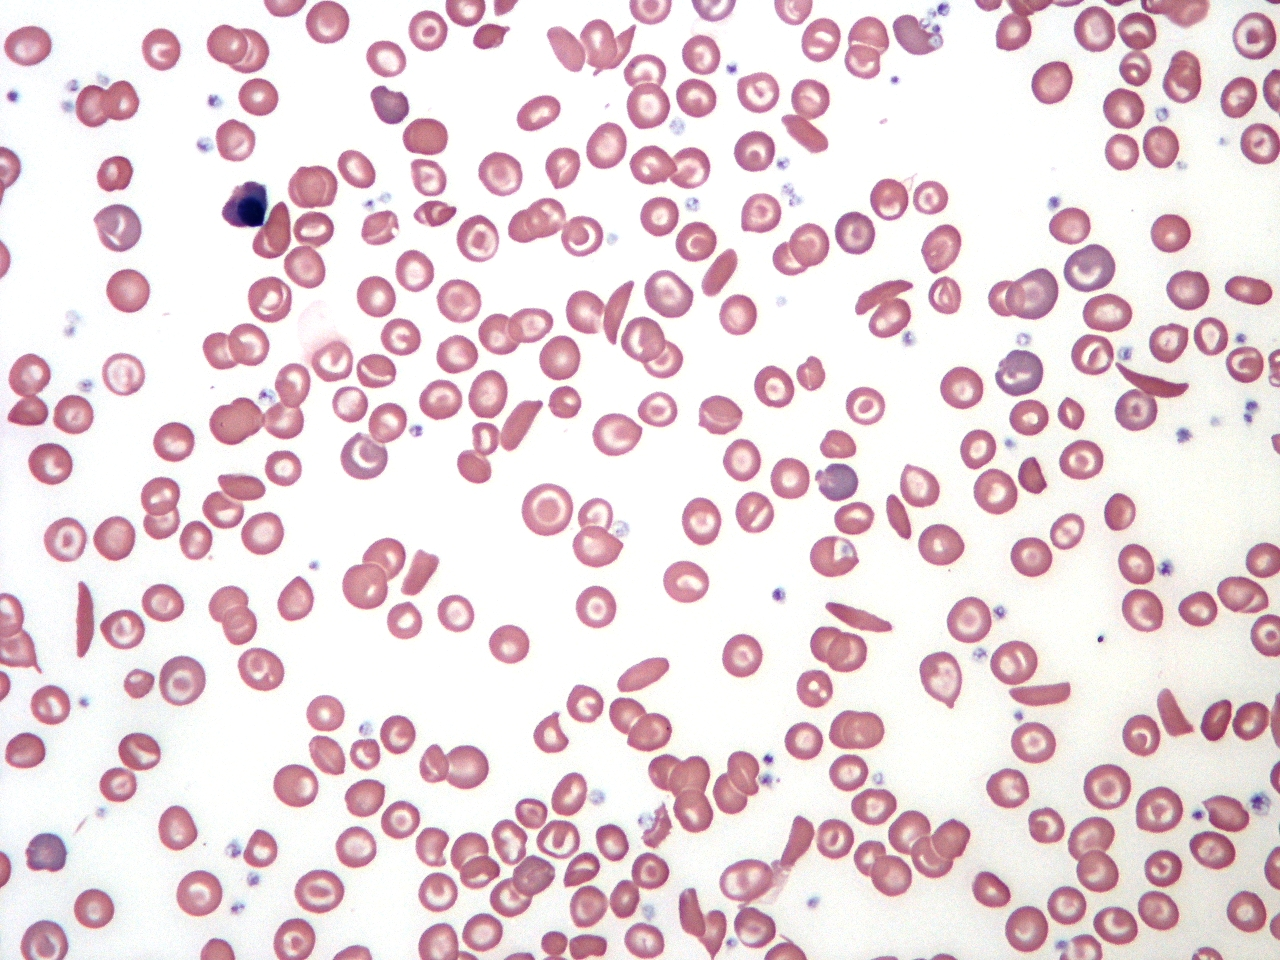 Sickle cell anemia blood under microscope